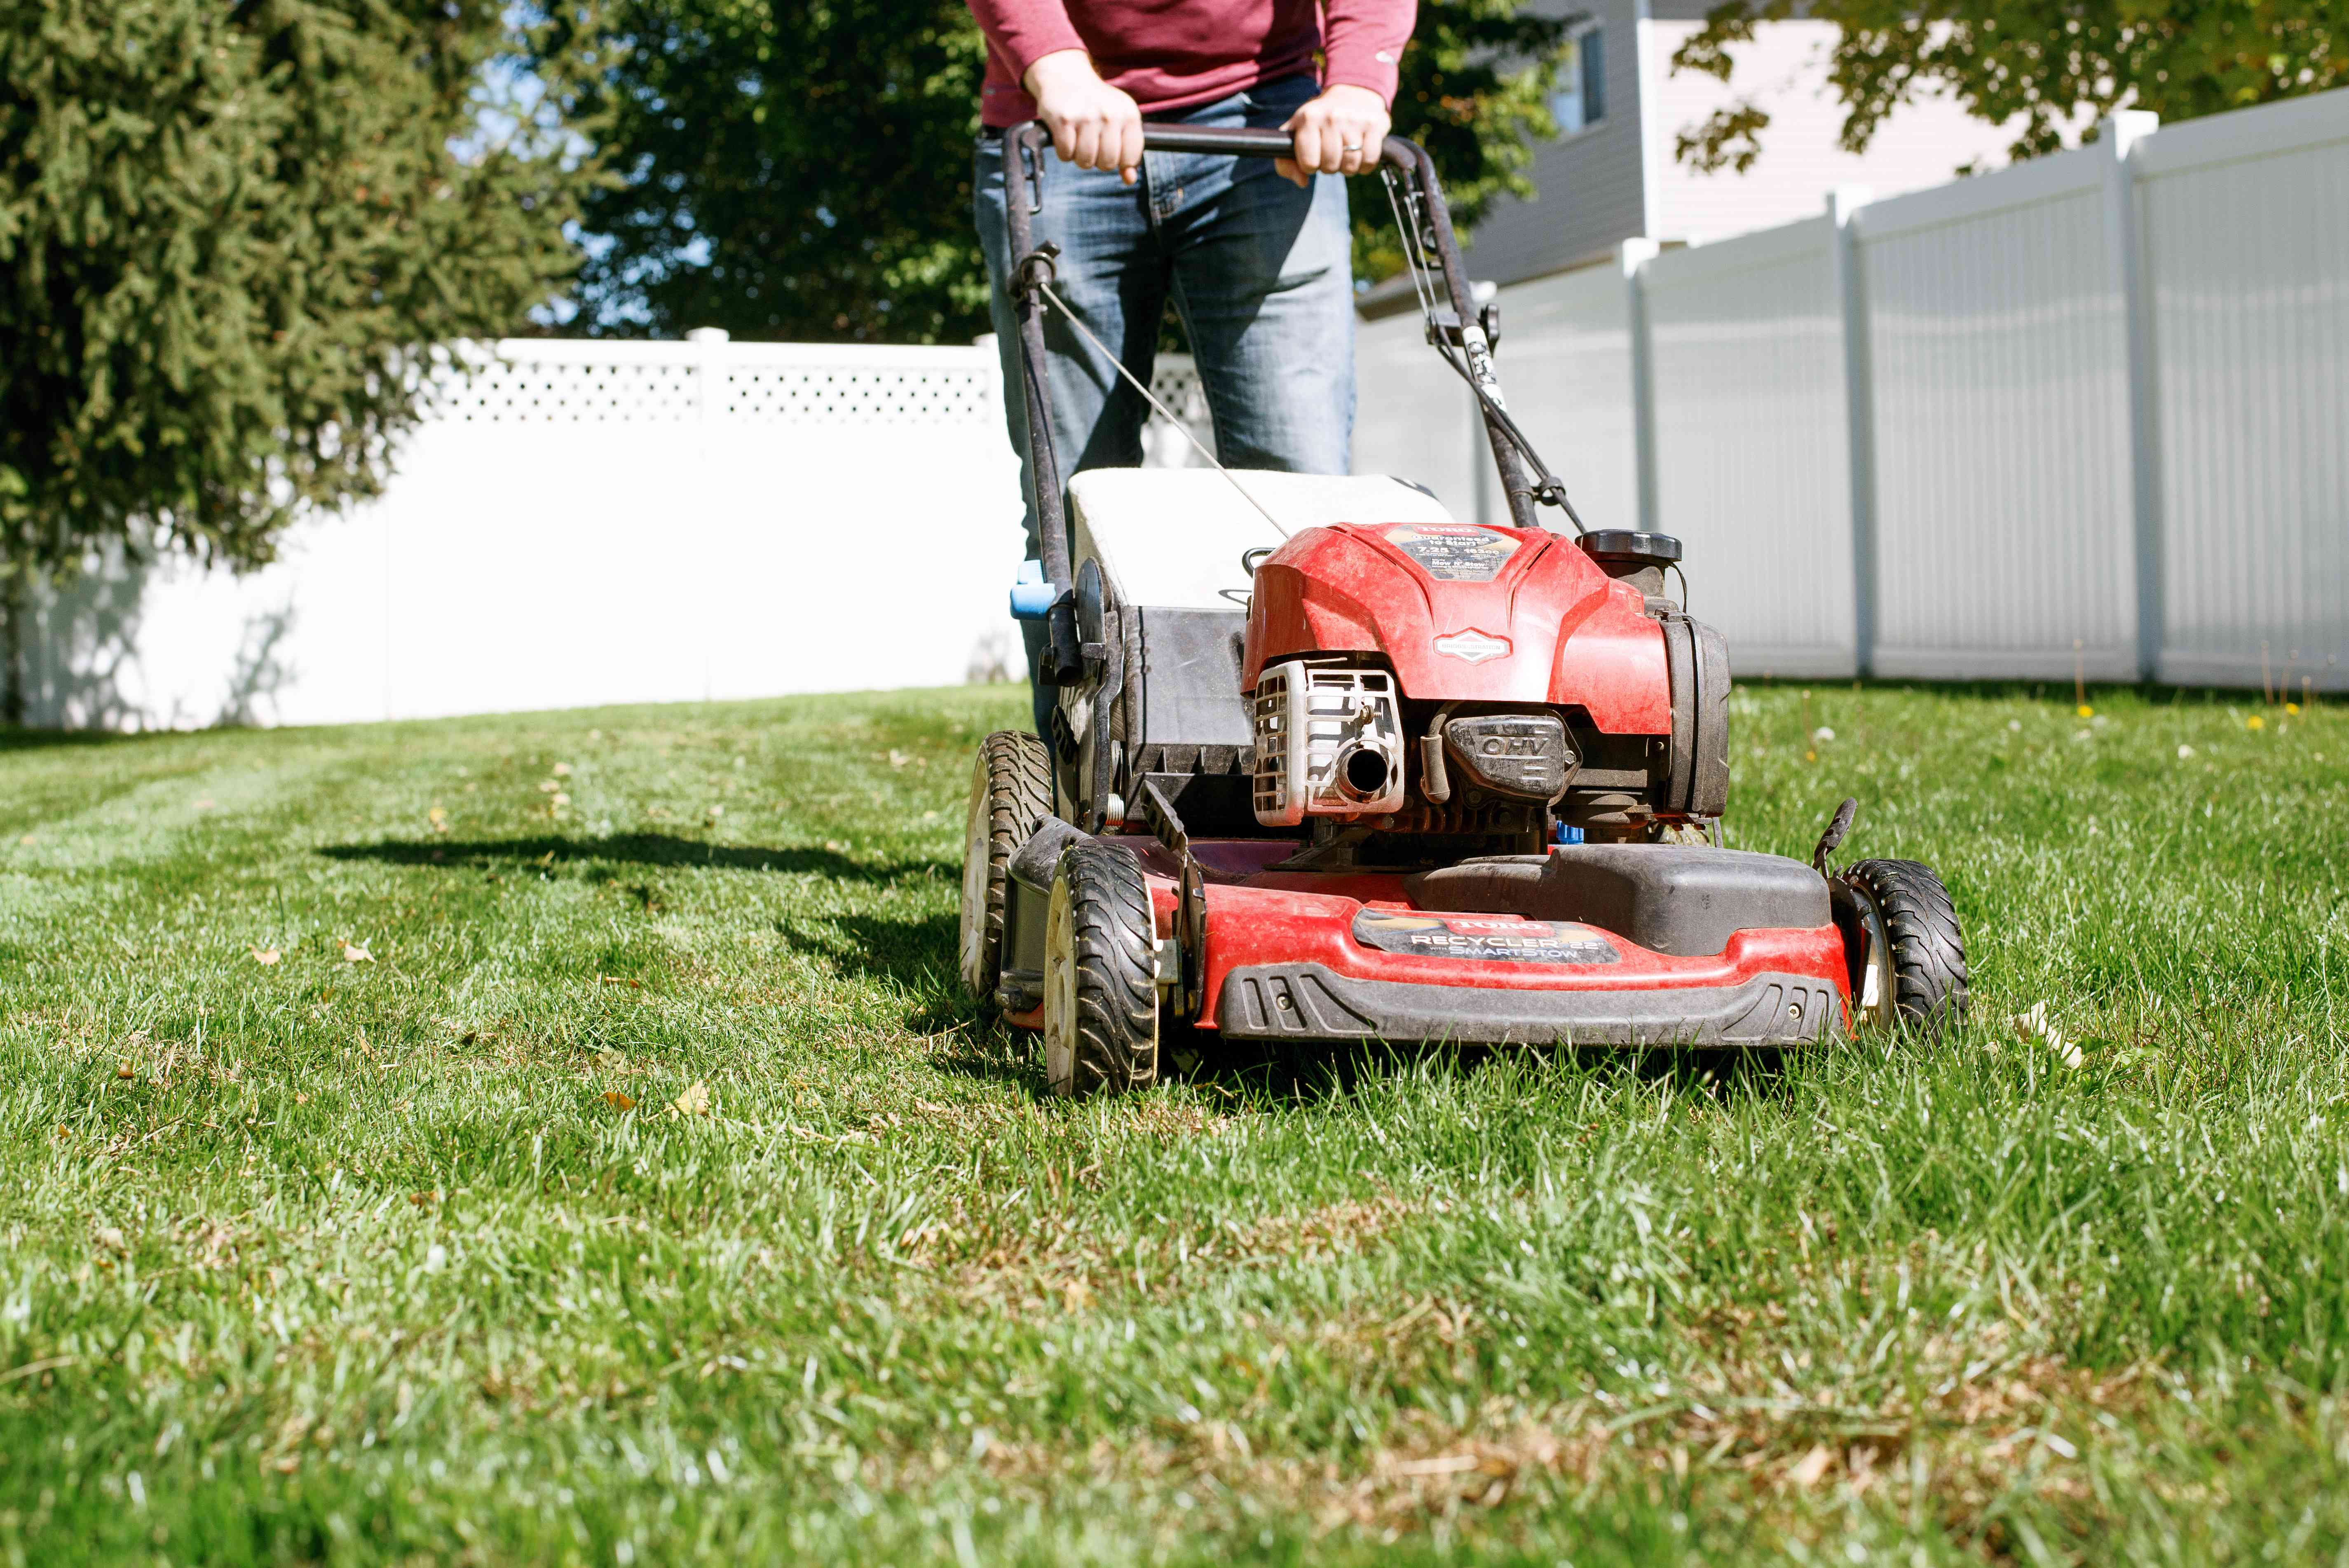 Yard being mowed with lawn mower to repel ticks naturally